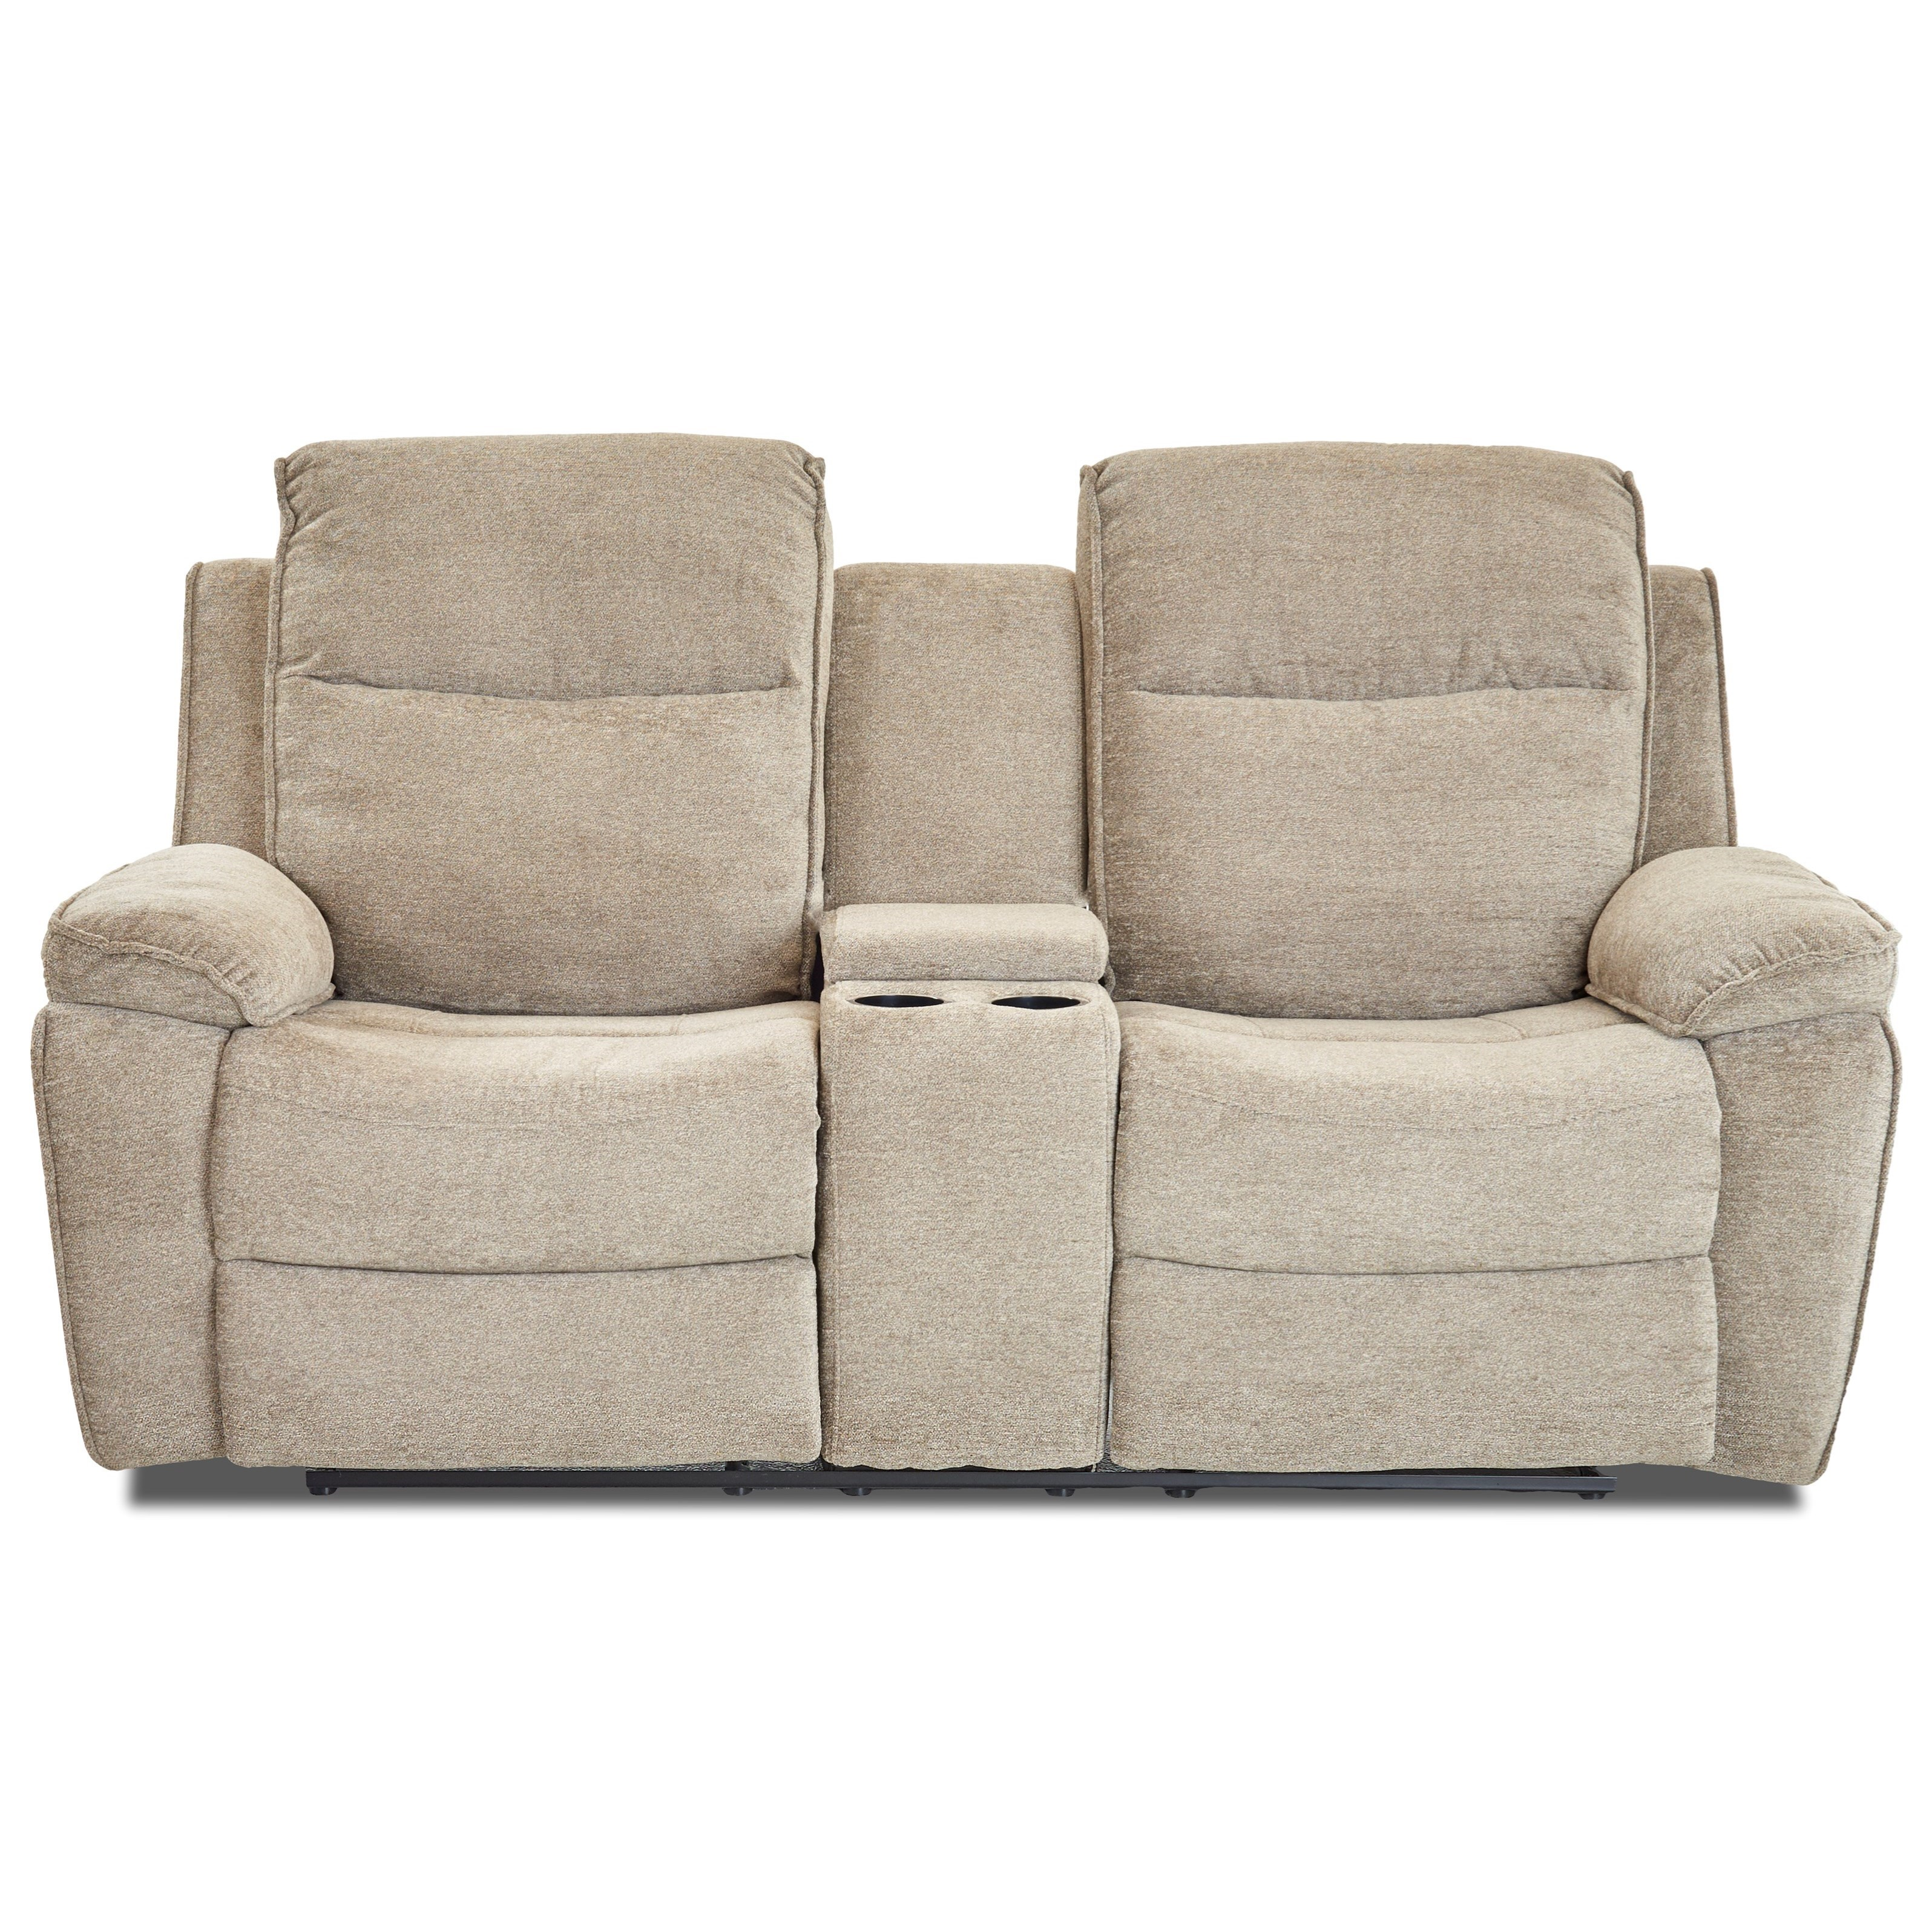 Castaway-US Console Reclining Loveseat by Klaussner International at Catalog Outlet